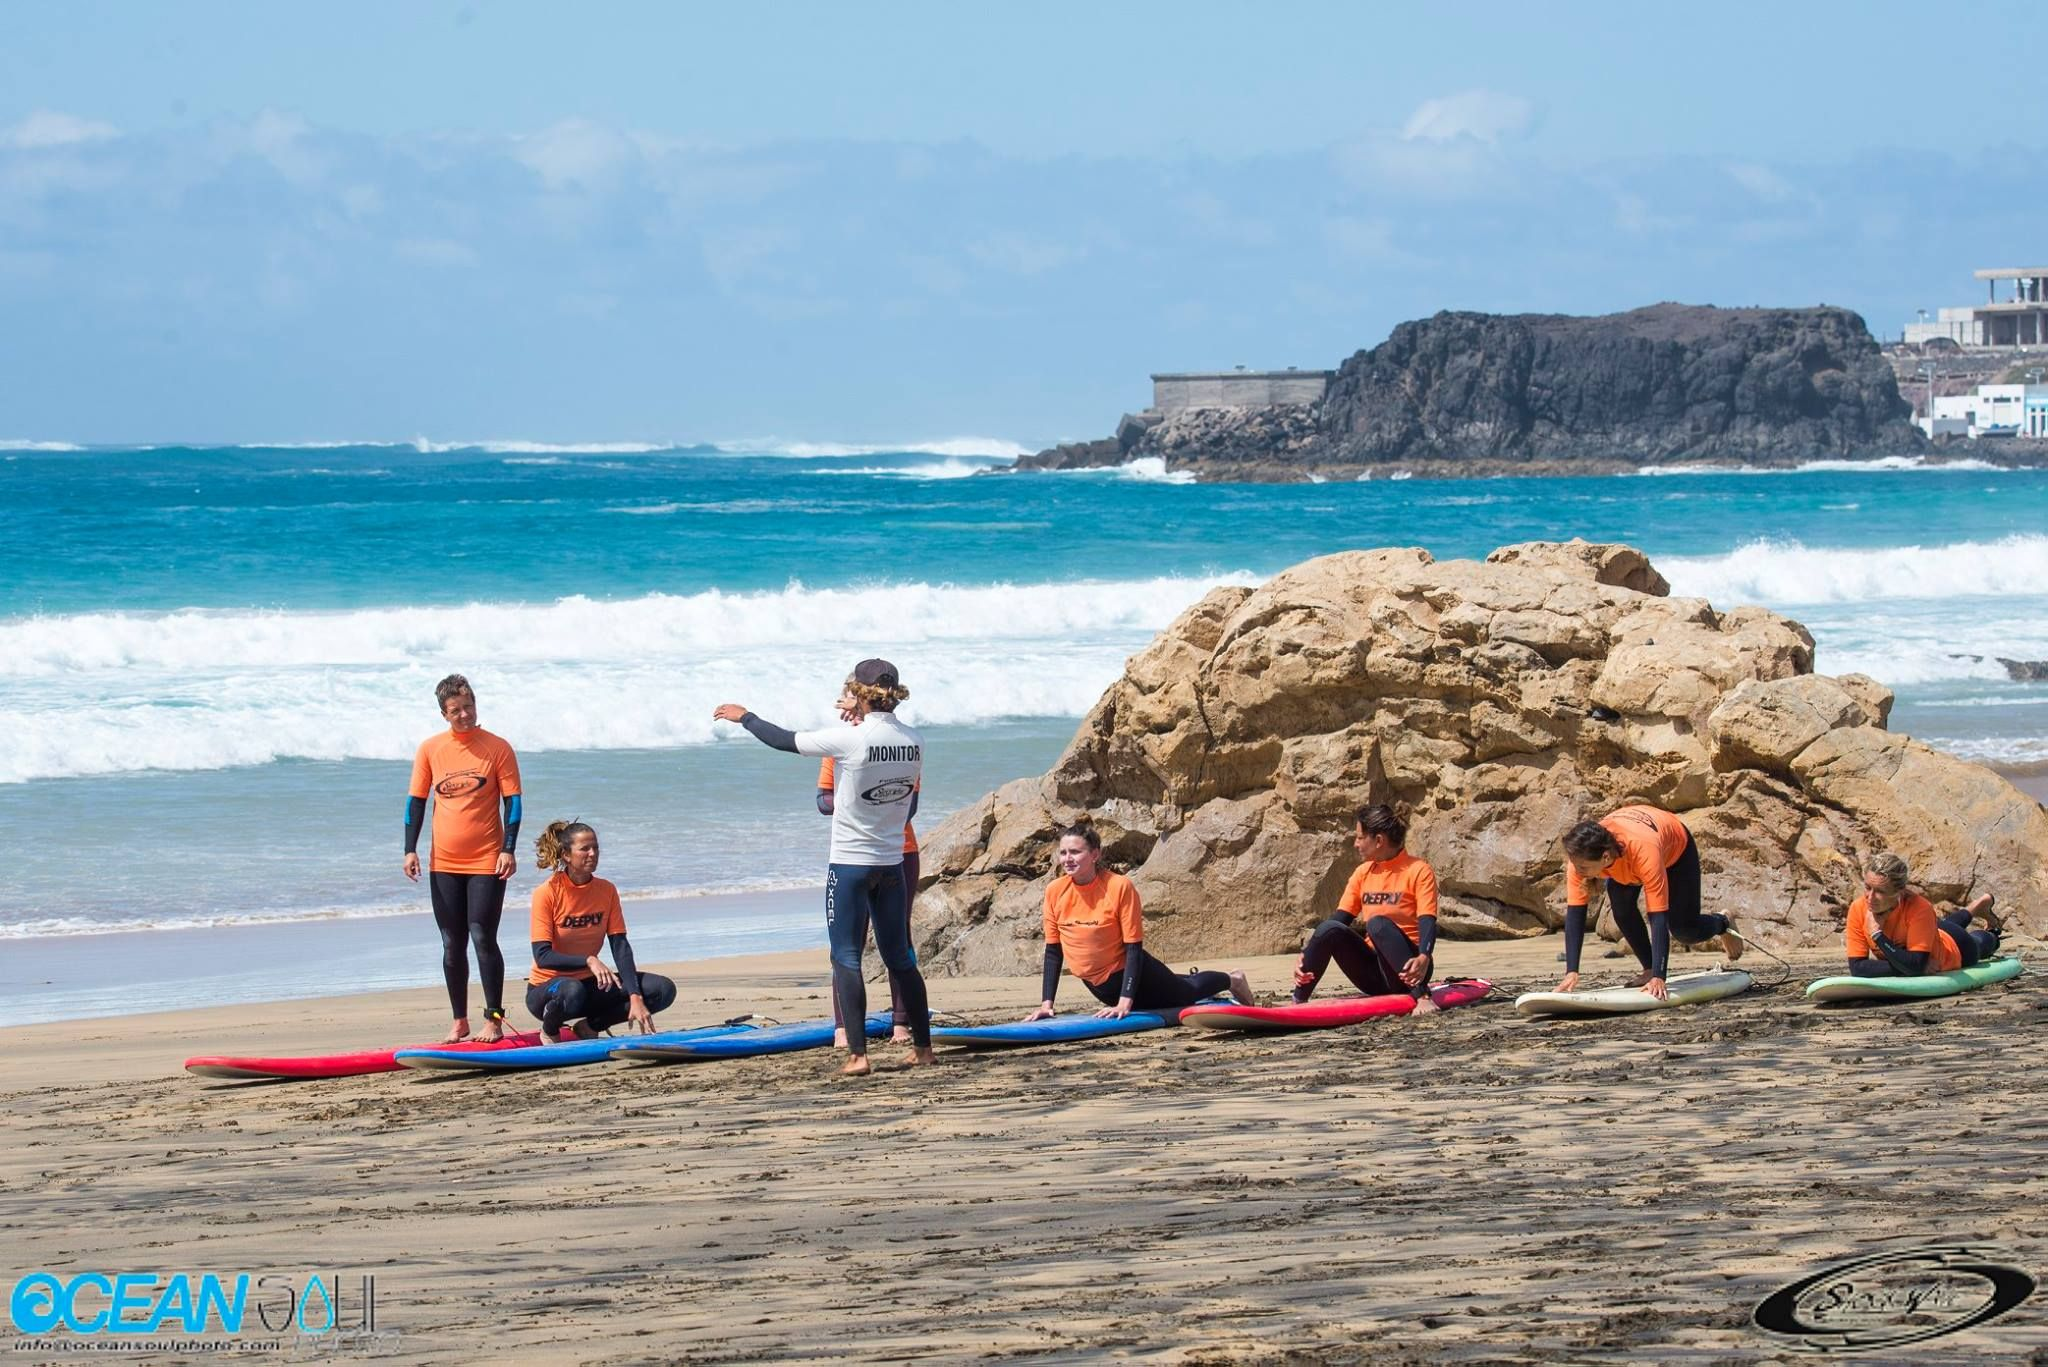 Surf lessons with personalized training in El Cotillo